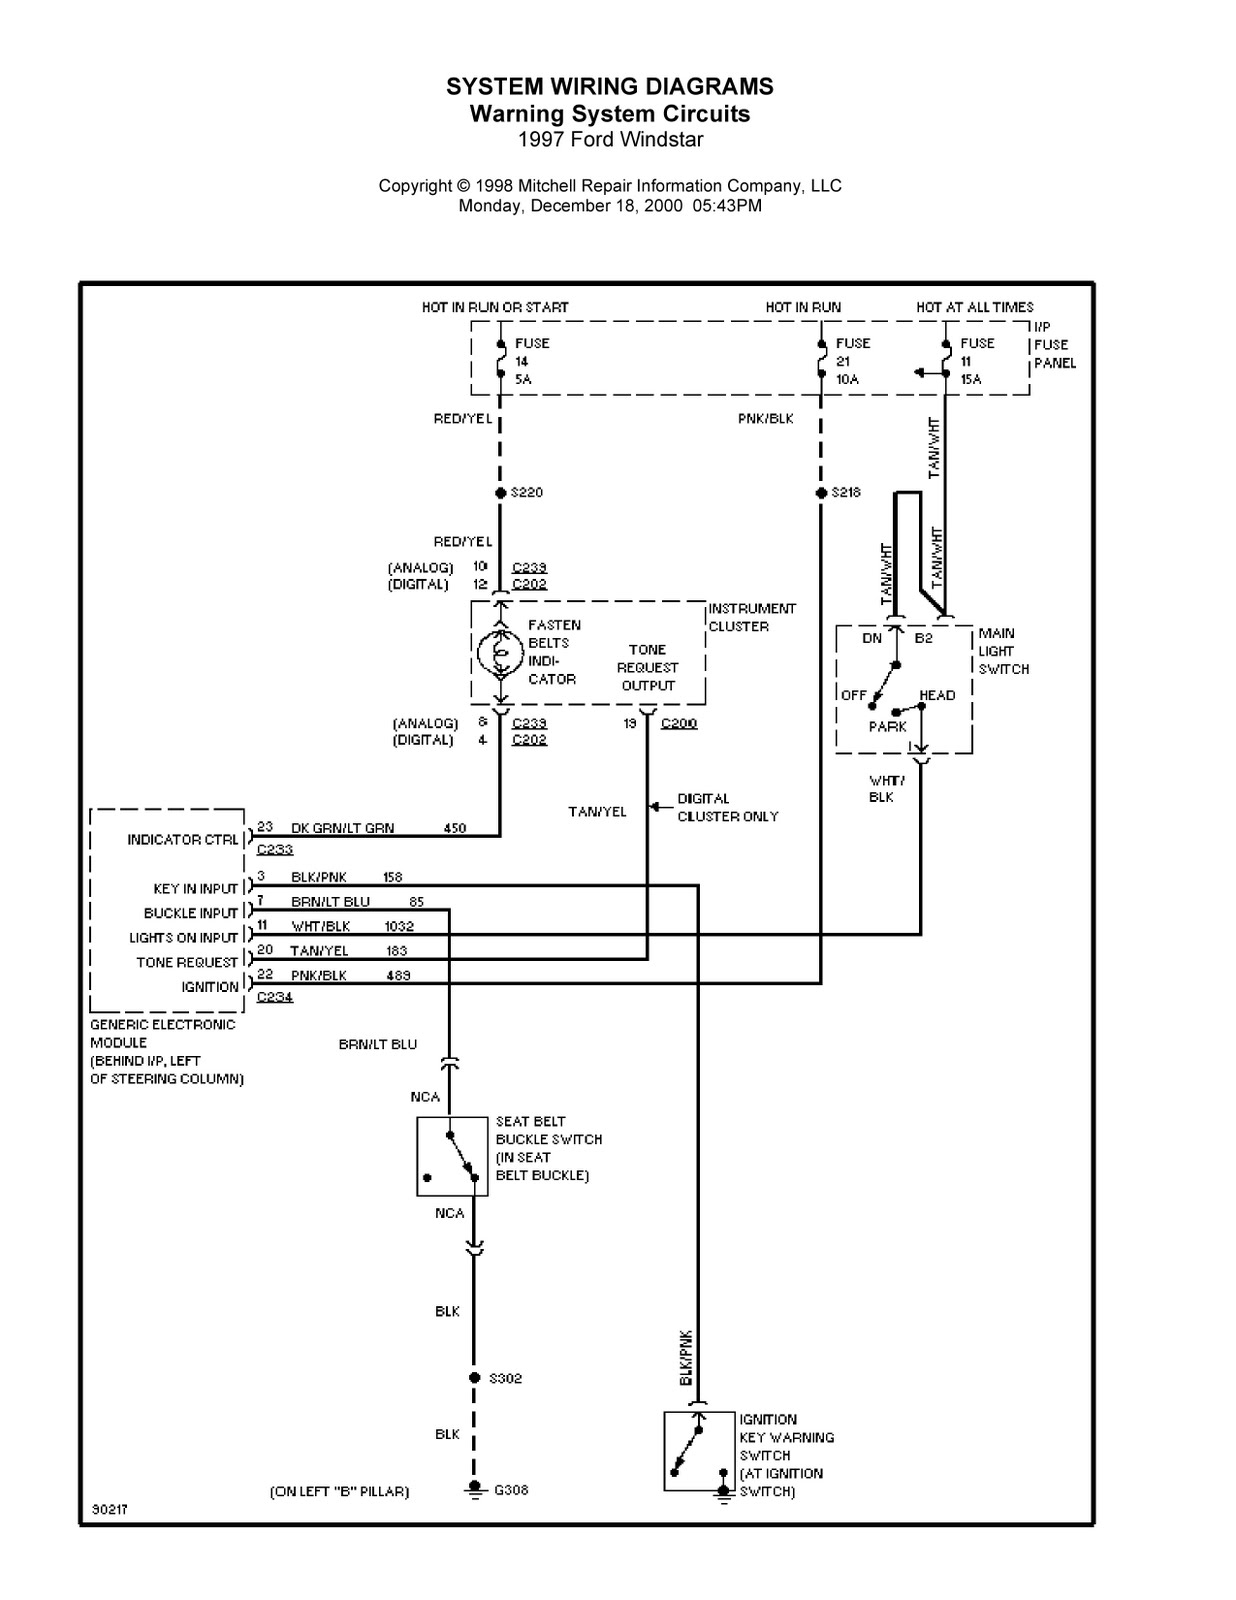 1997 Ford Windstar Complete System Wiring Diagrams Analog Phone Diagram Center